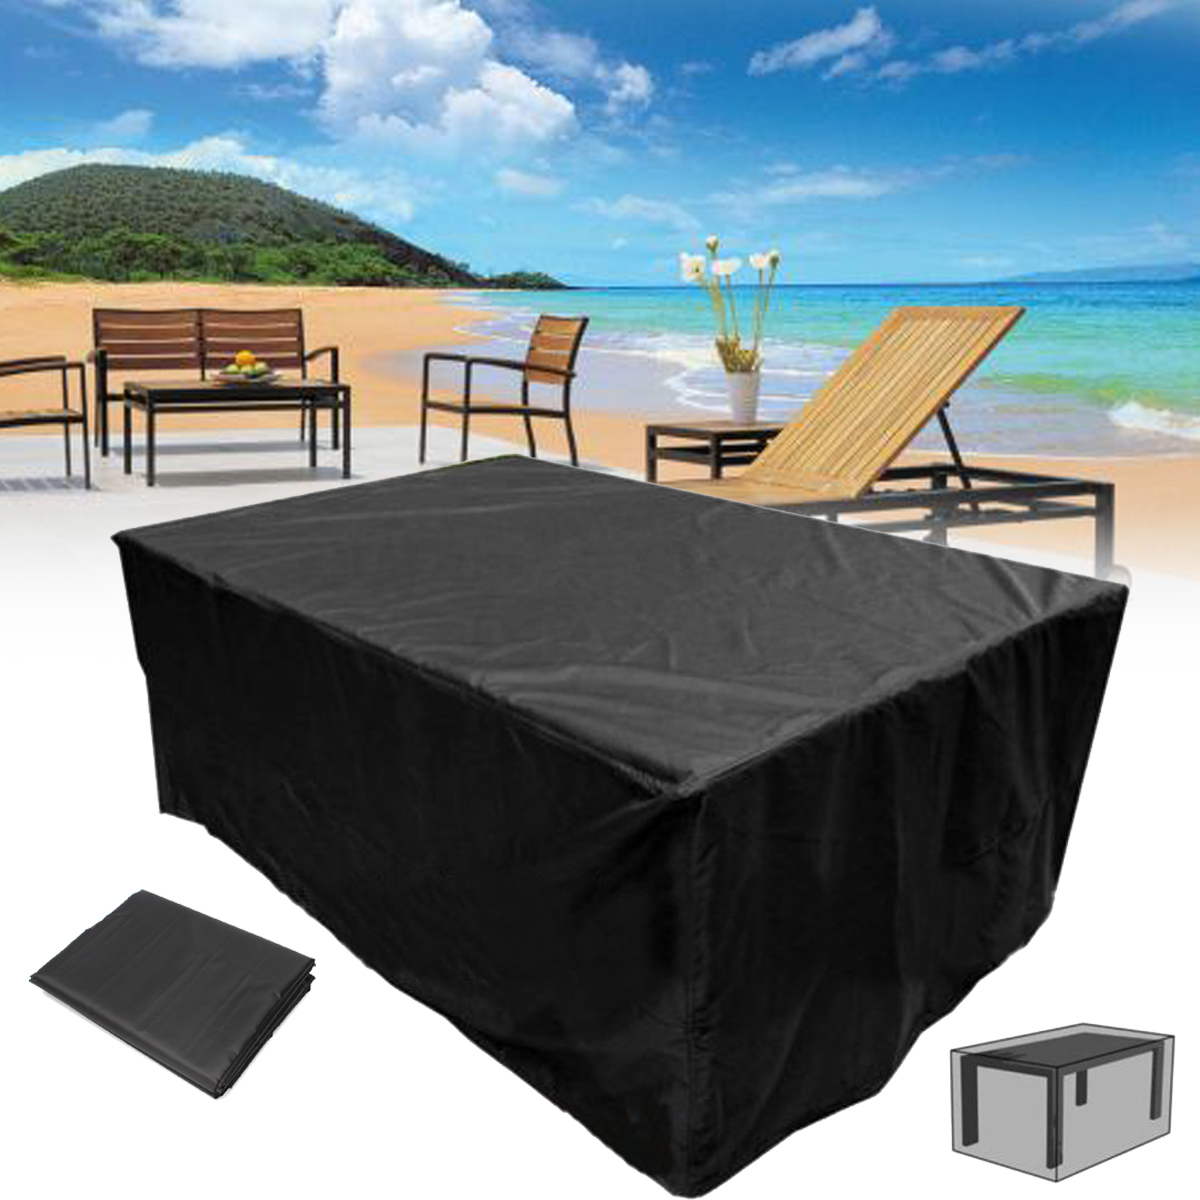 waterproof outdoor chair covers australia indian 320x220x70cm garden patio furniture